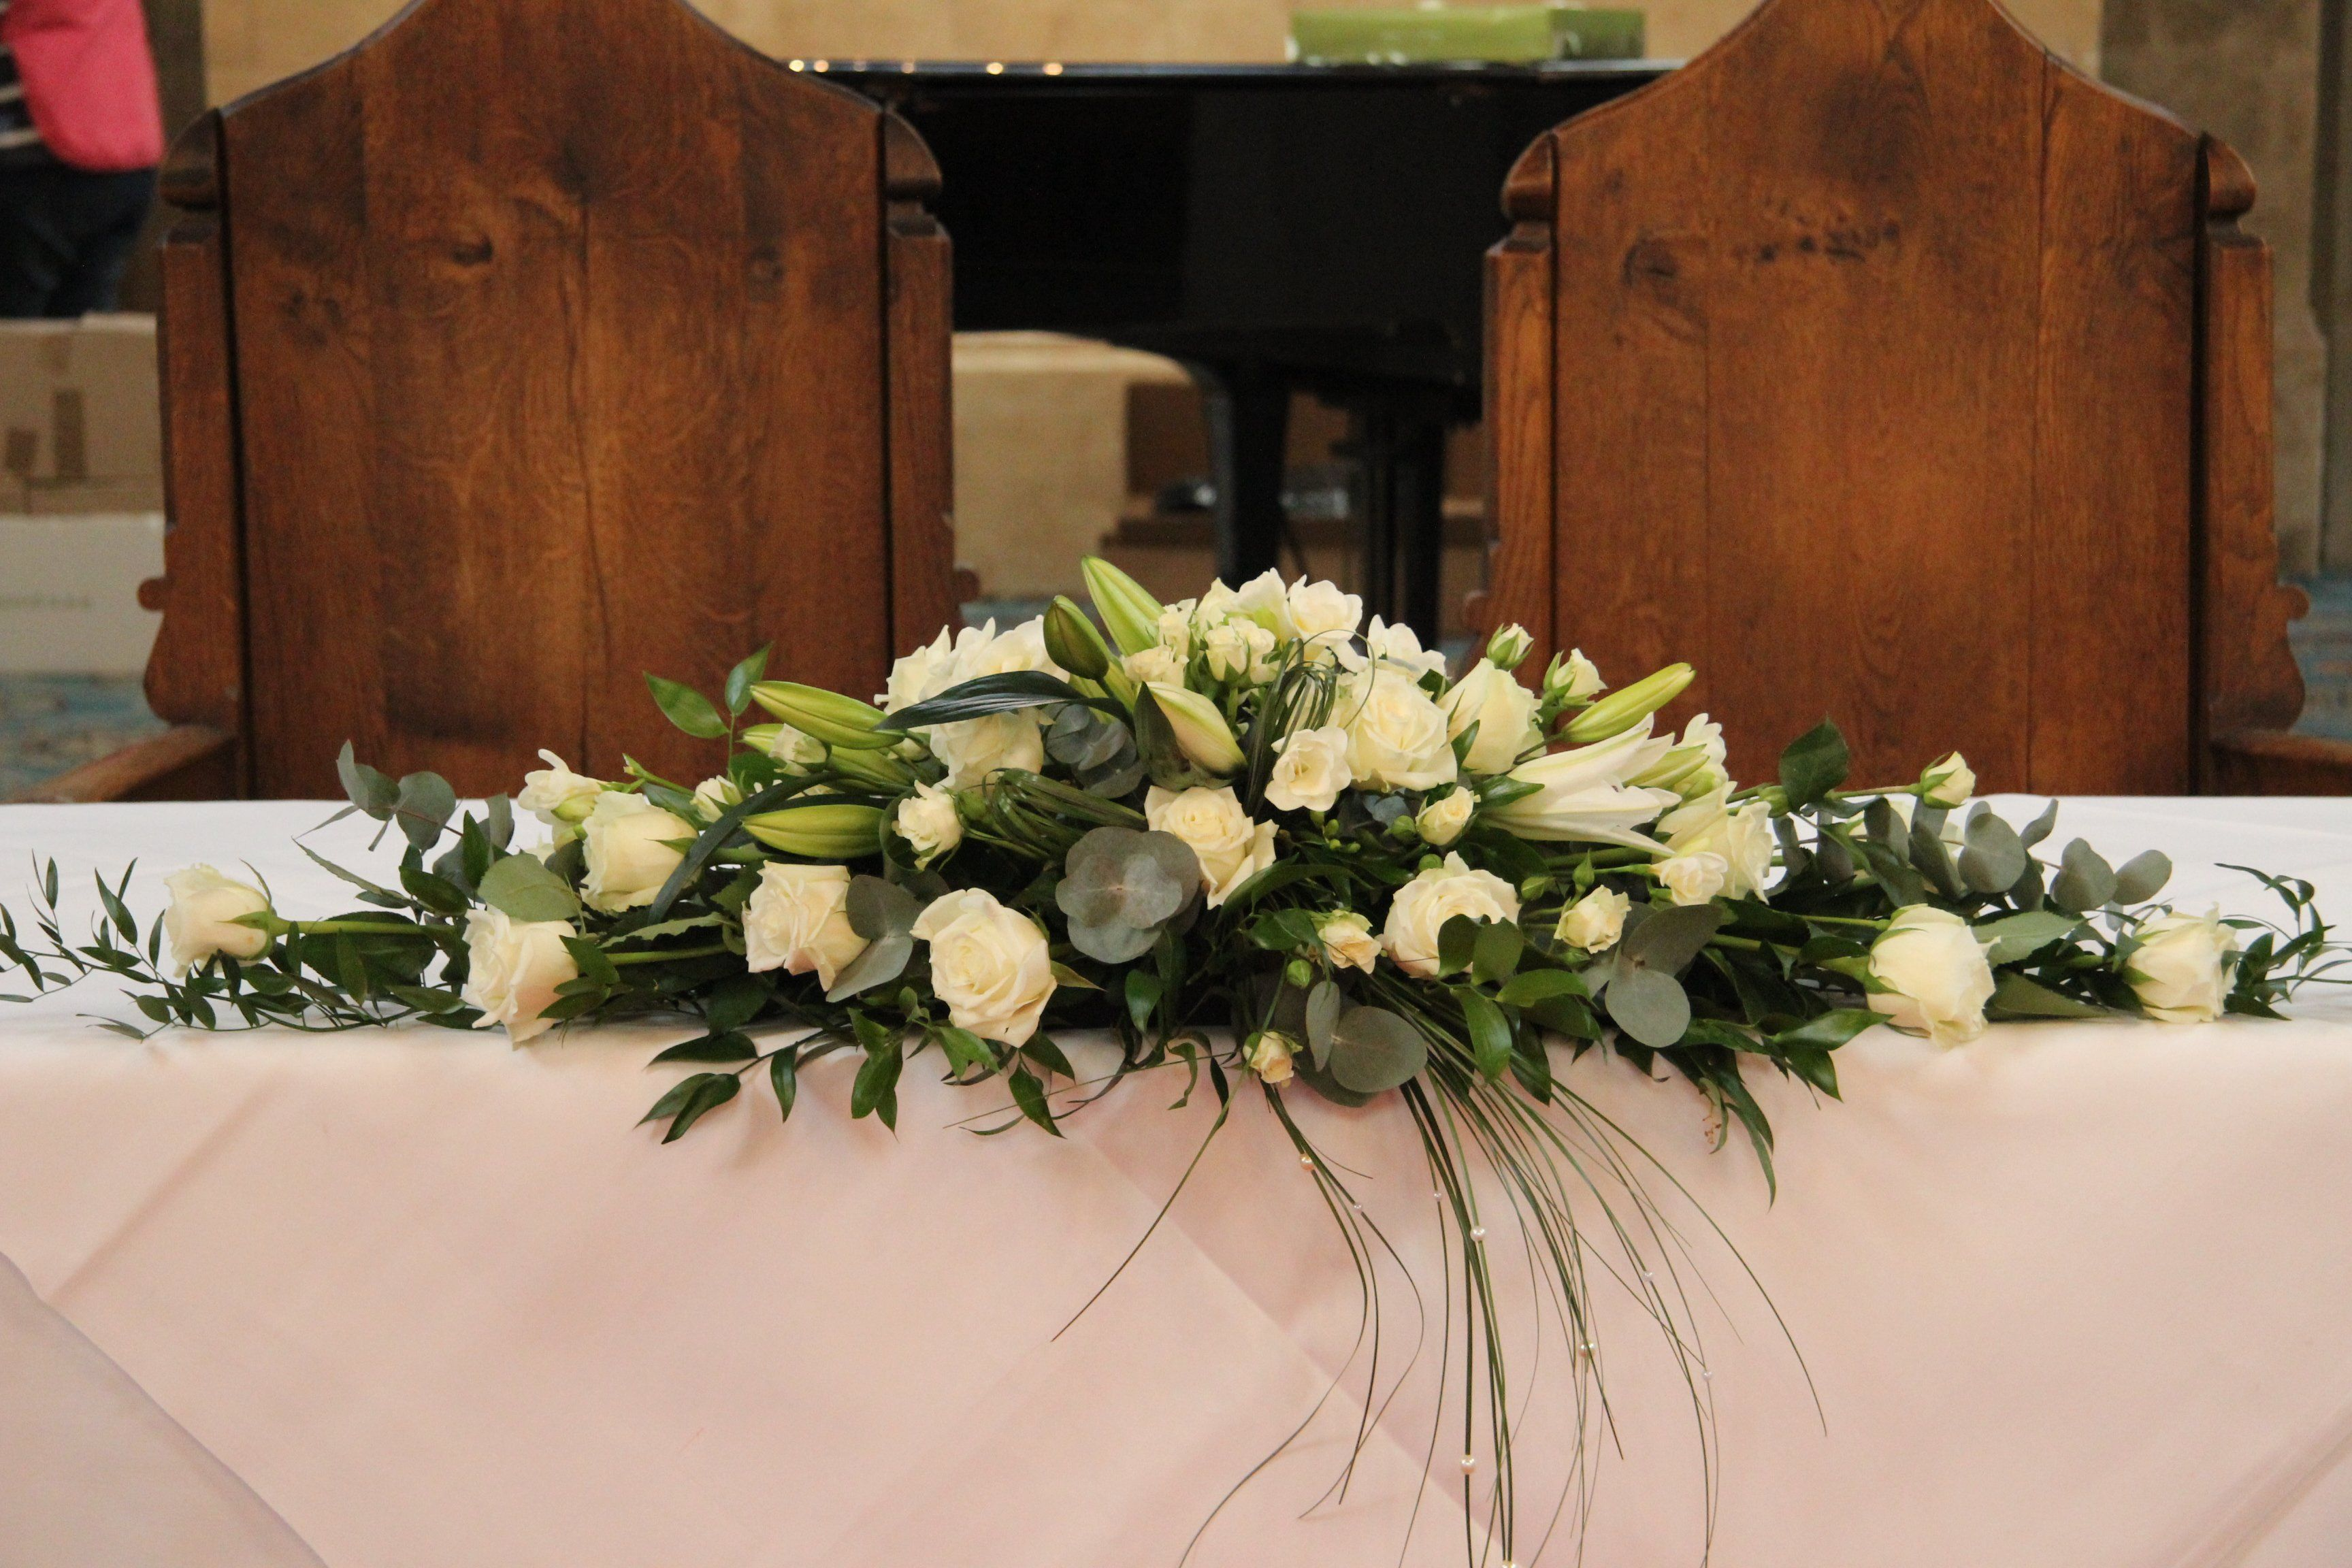 Top table flower arrangements for weddings google search for Floral table decorations for weddings